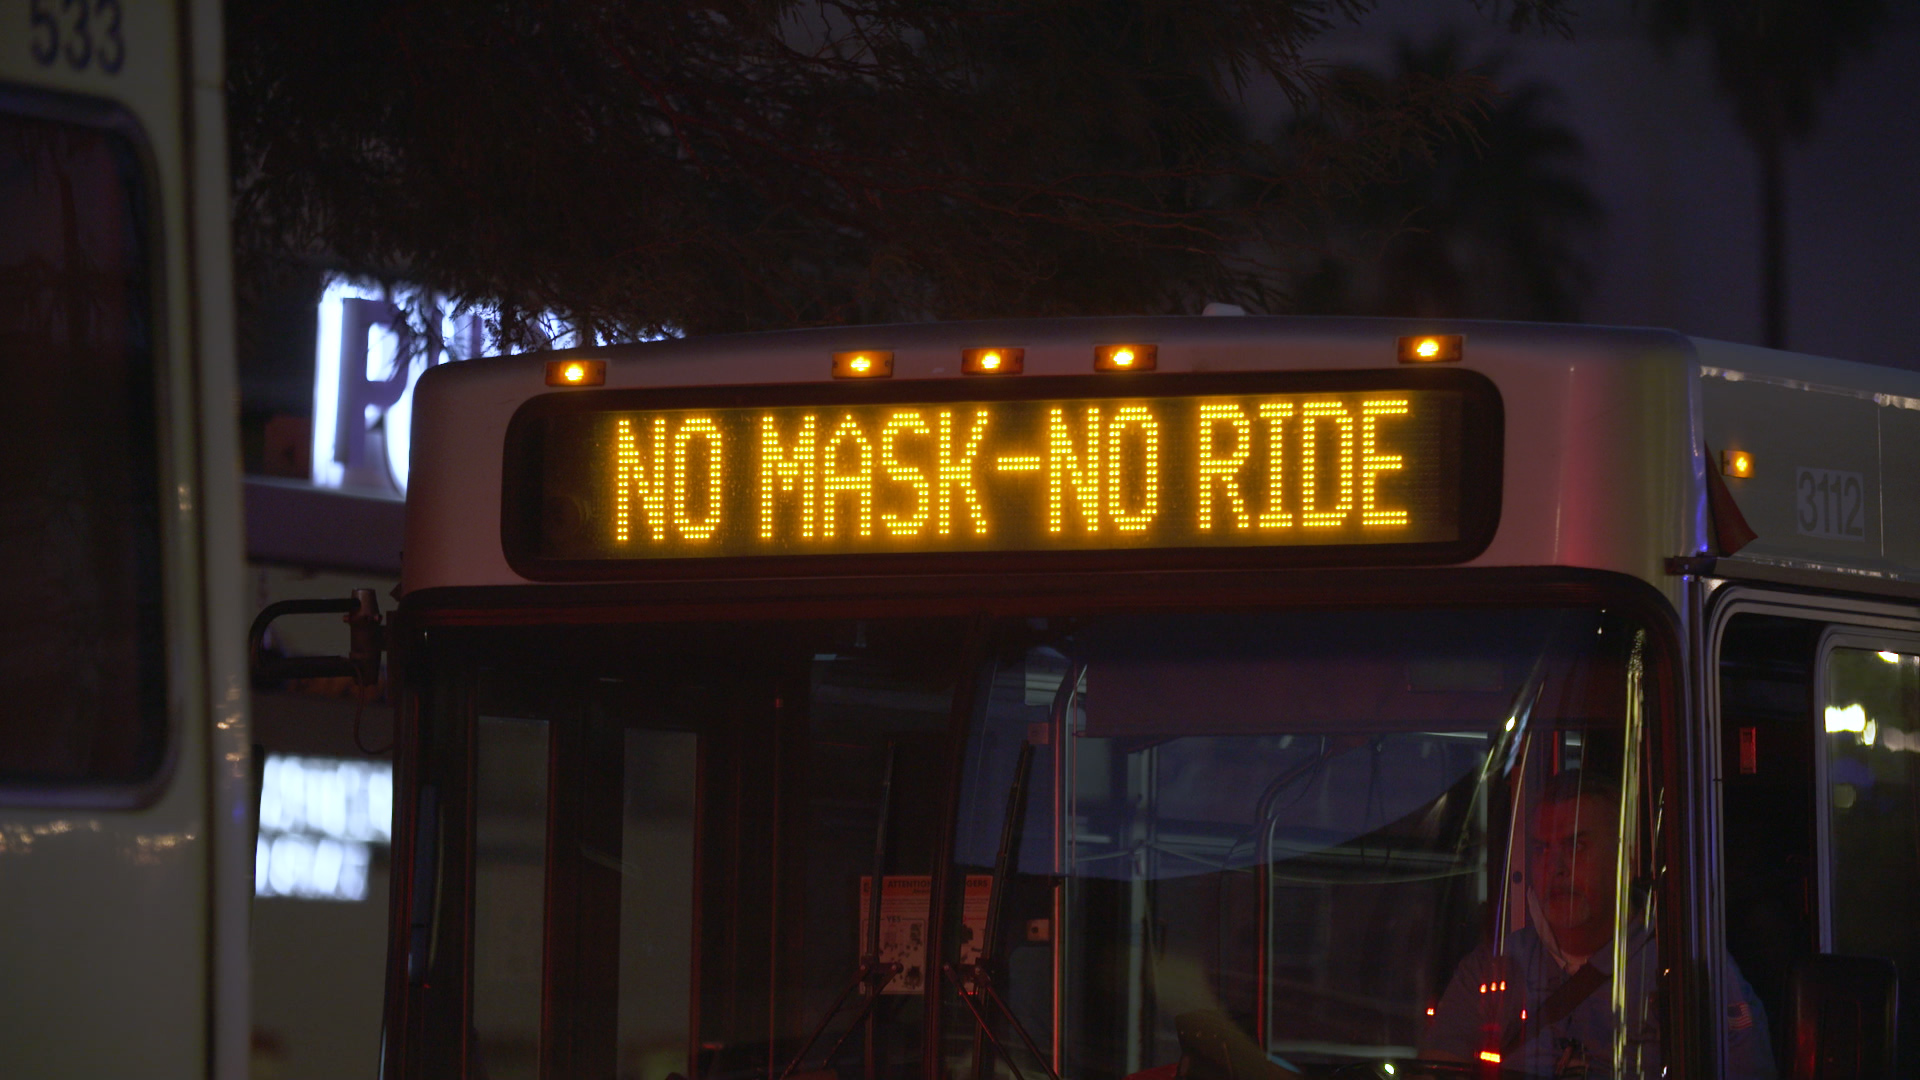 Sunlink bus sign announcing that masks are required to ride.